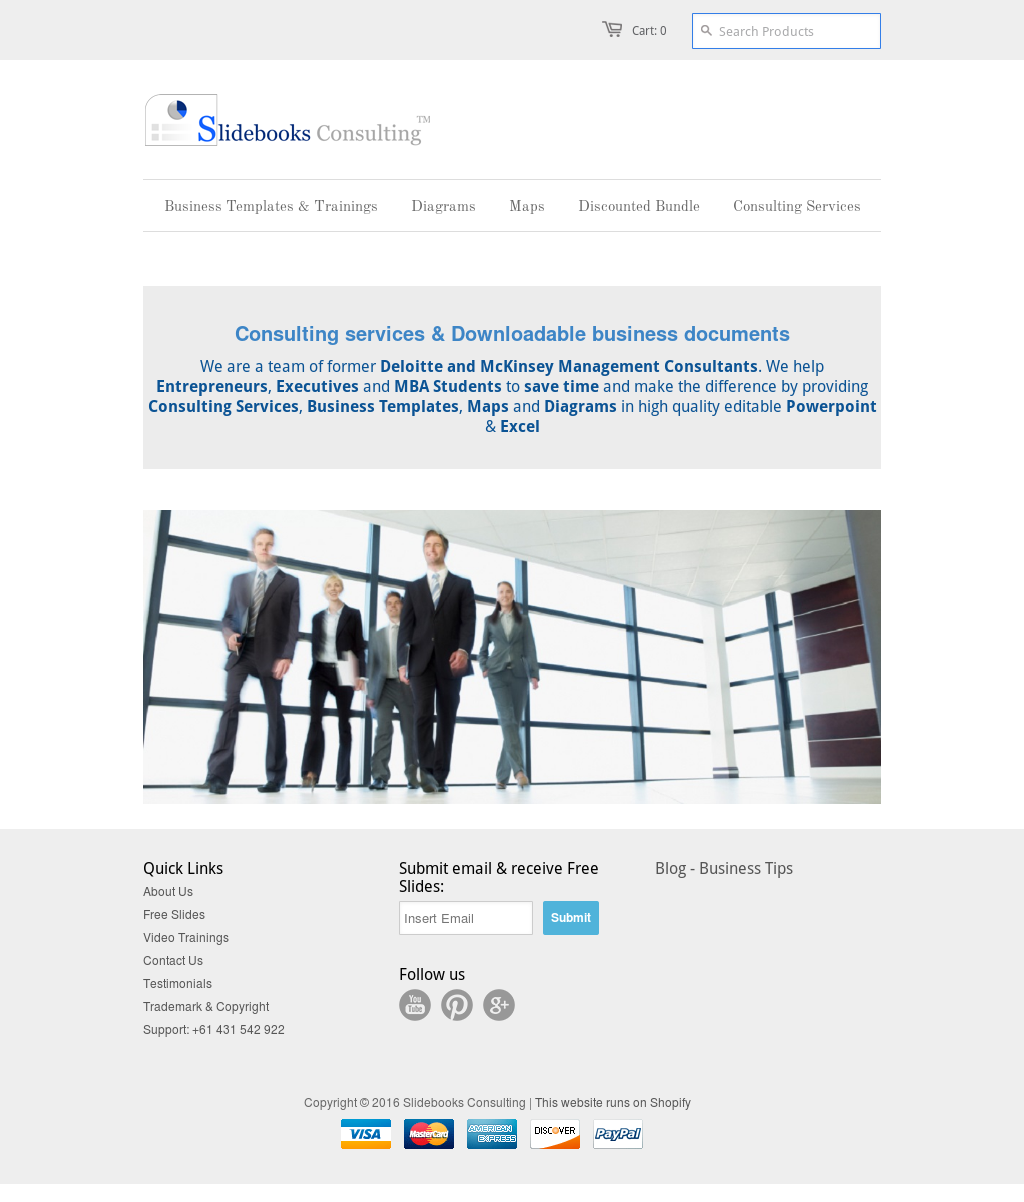 Slidebooks Consulting Competitors, Revenue and Employees